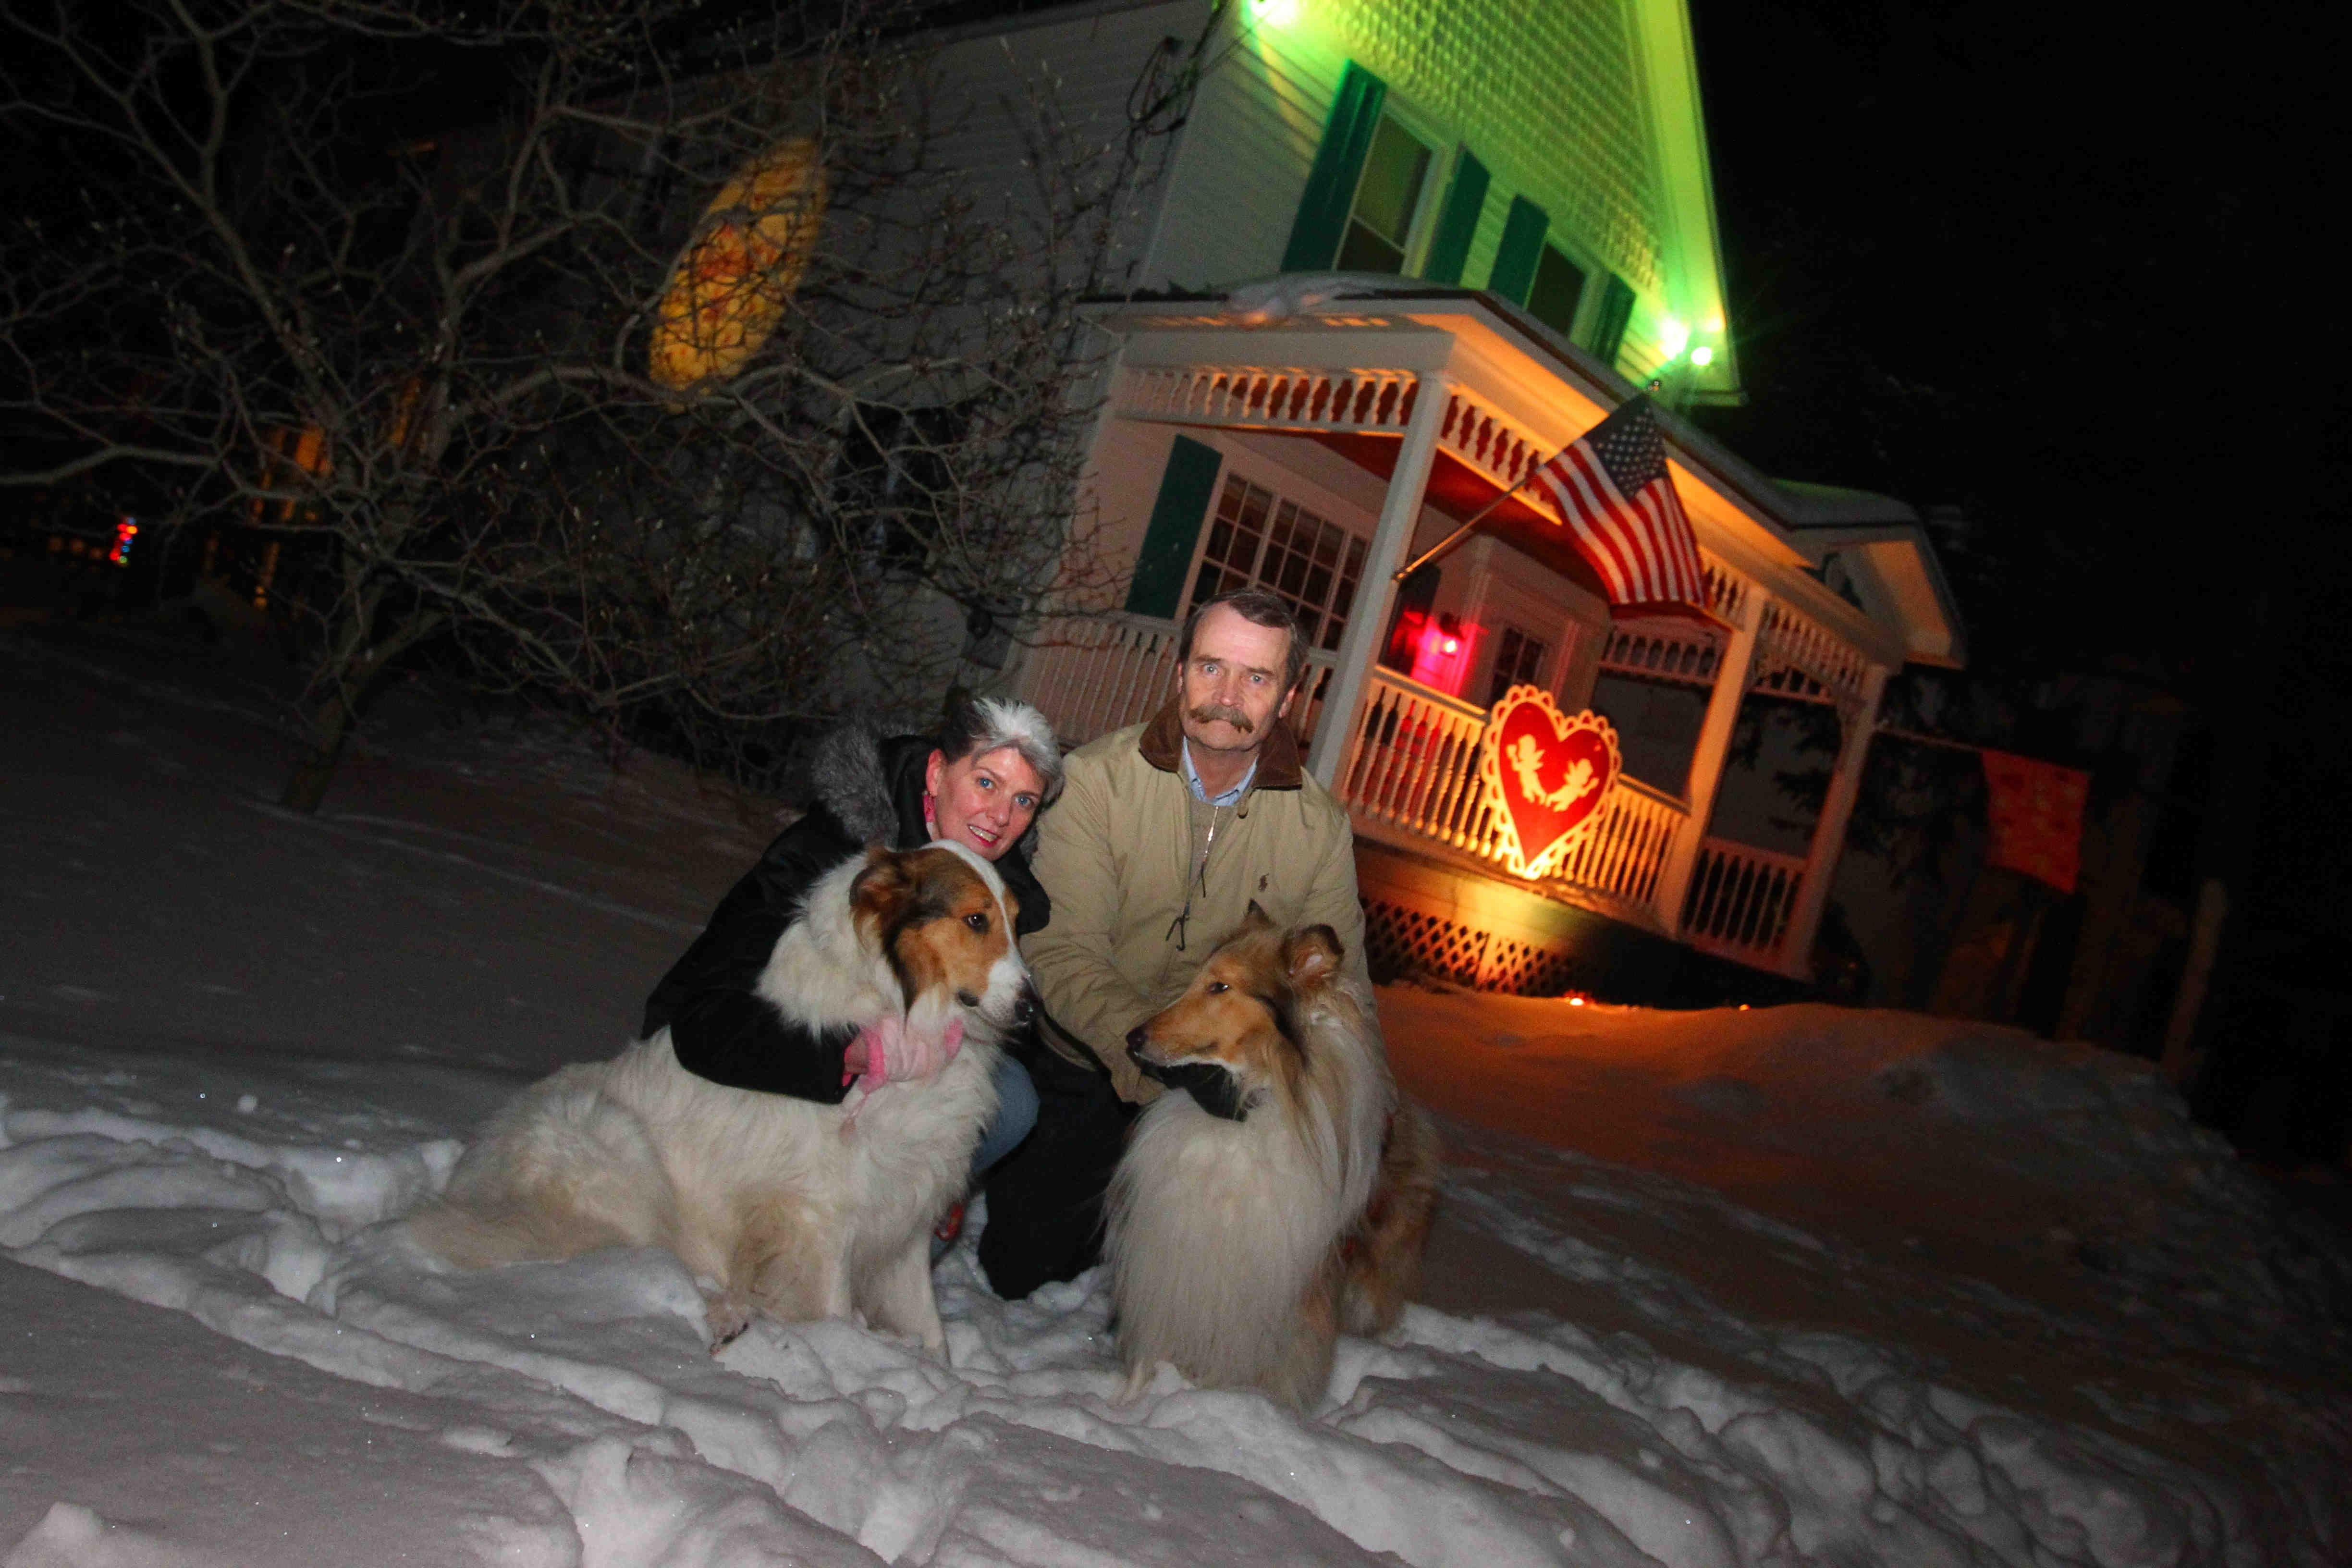 Paul and Mary Lynne Clough pose outside their Valentine's Day-festooned  house in the East Aurora. The house is decorated for every major holiday, but this one is something special.